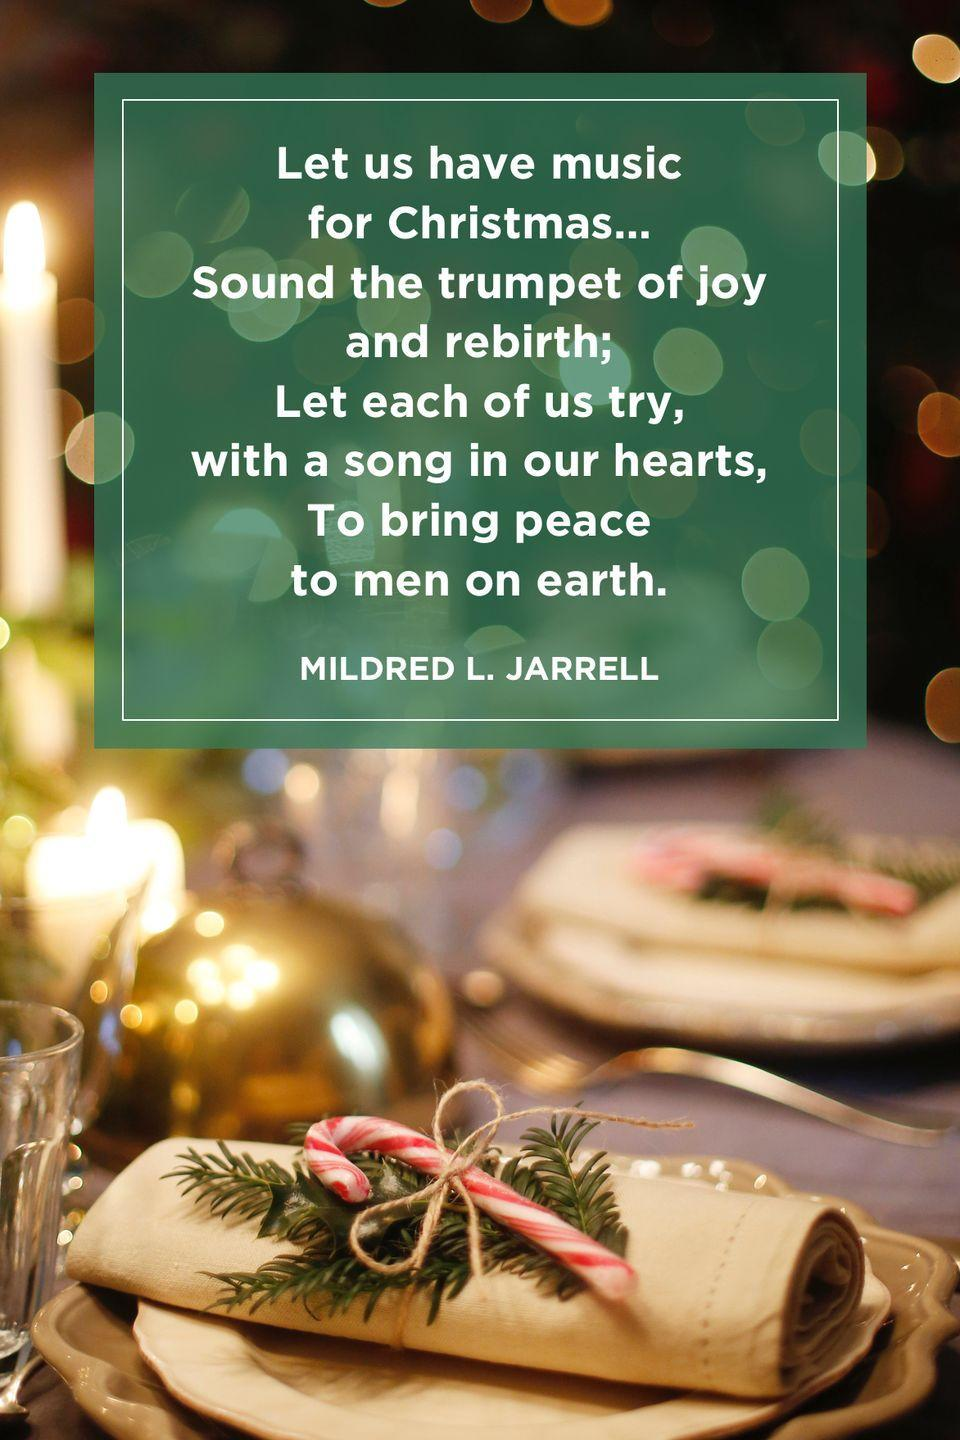 """<p>""""Let us have music for Christmas…<br>Sound the trumpet of joy and rebirth;<br>Let each of us try, with a song in our hearts,<br>To bring peace to men on earth.""""</p>"""